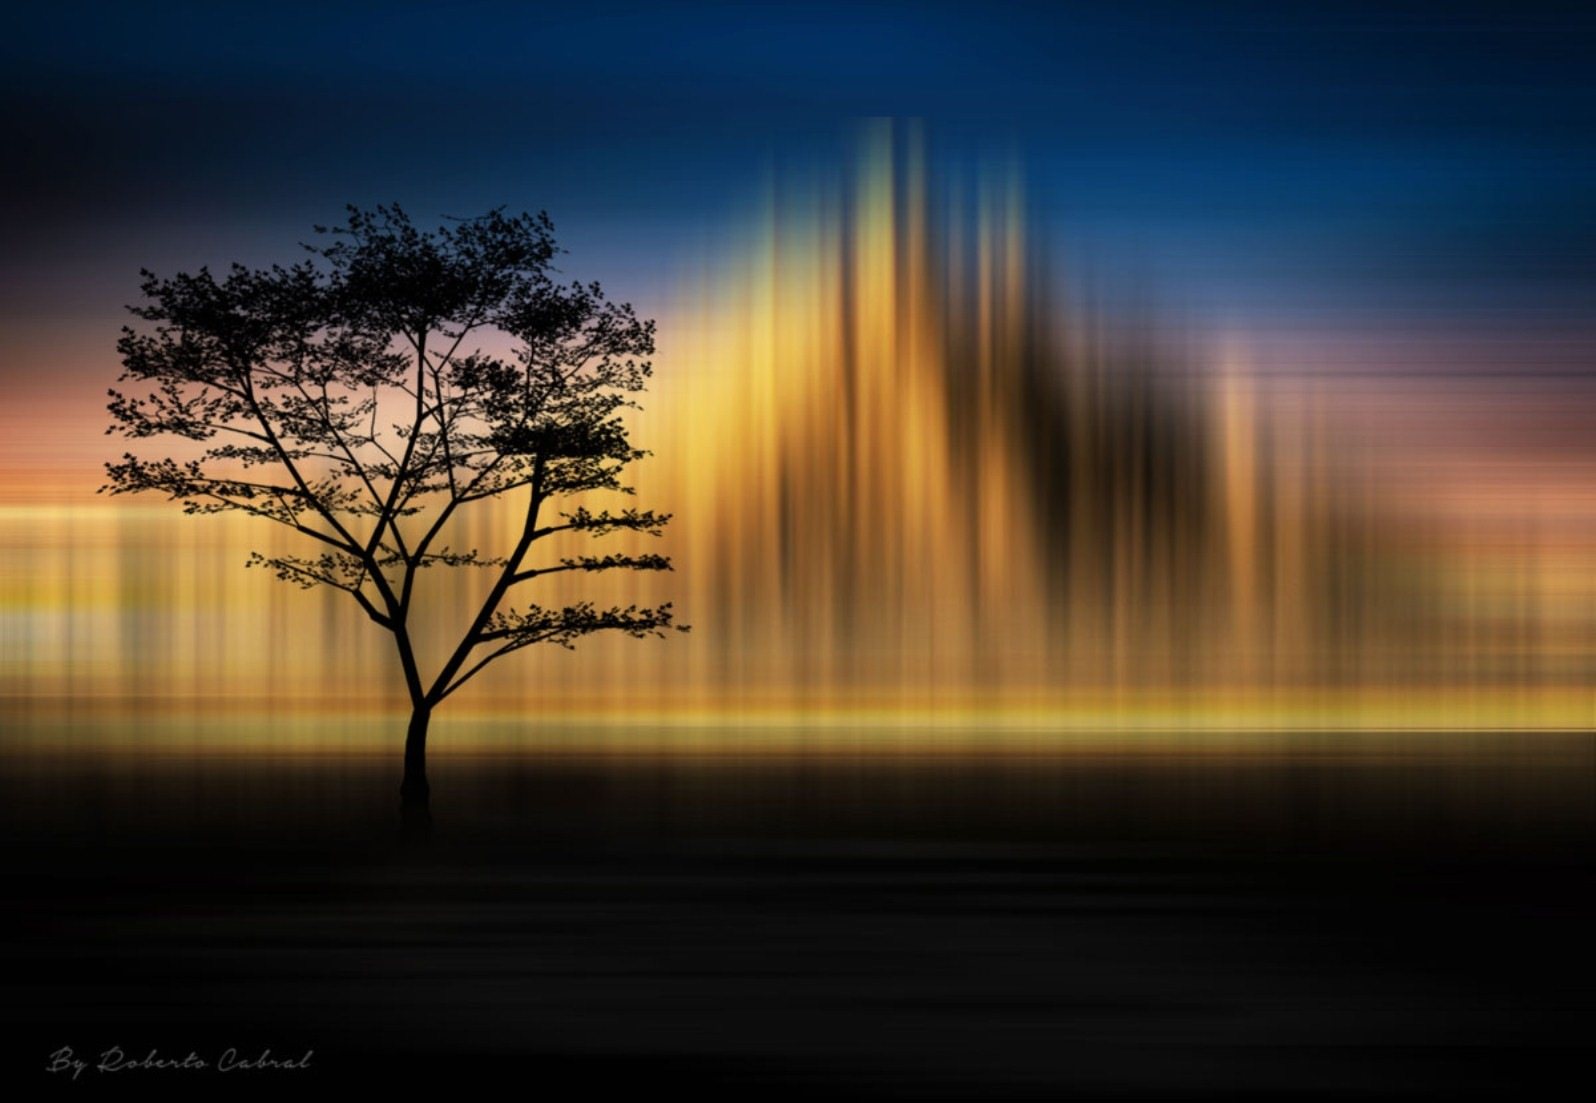 Incansable by Roberto Cabral │ Image & Photography